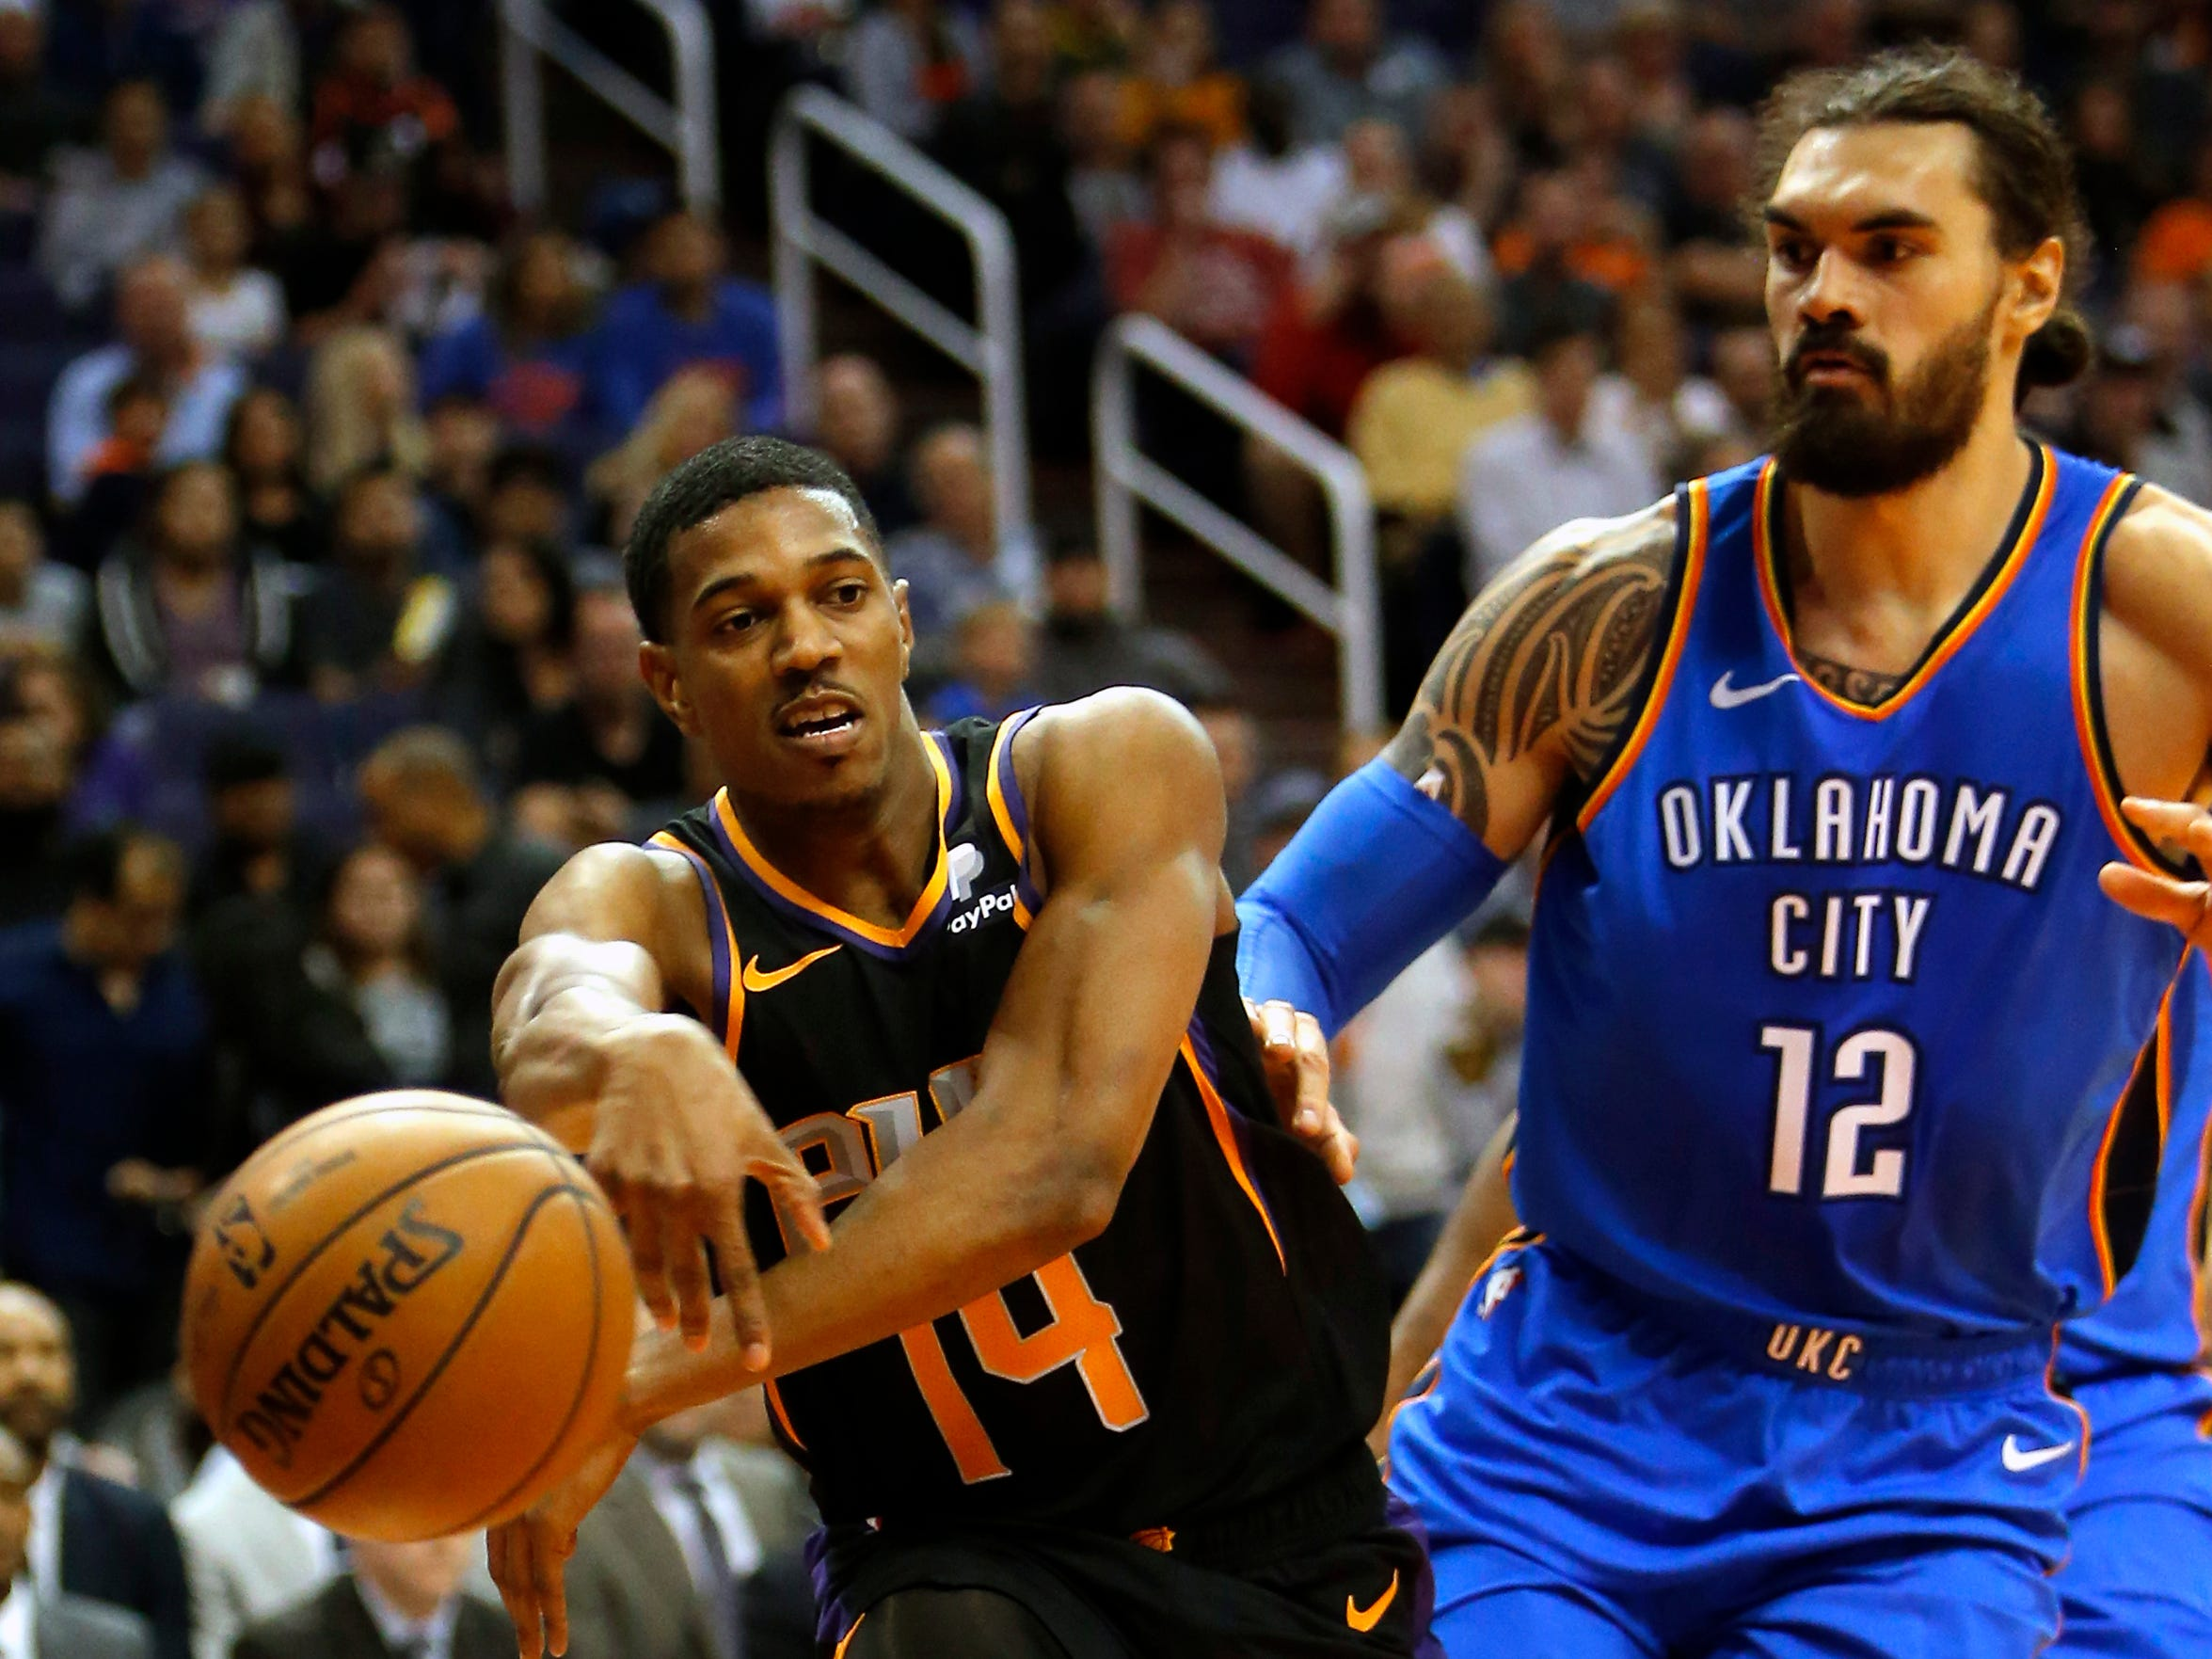 Phoenix Suns guard De'Anthony Melton (14) in the first half during an NBA basketball game against the Oklahoma City Thunder, Saturday, Nov. 17, 2018, in Phoenix. (AP Photo/Rick Scuteri)